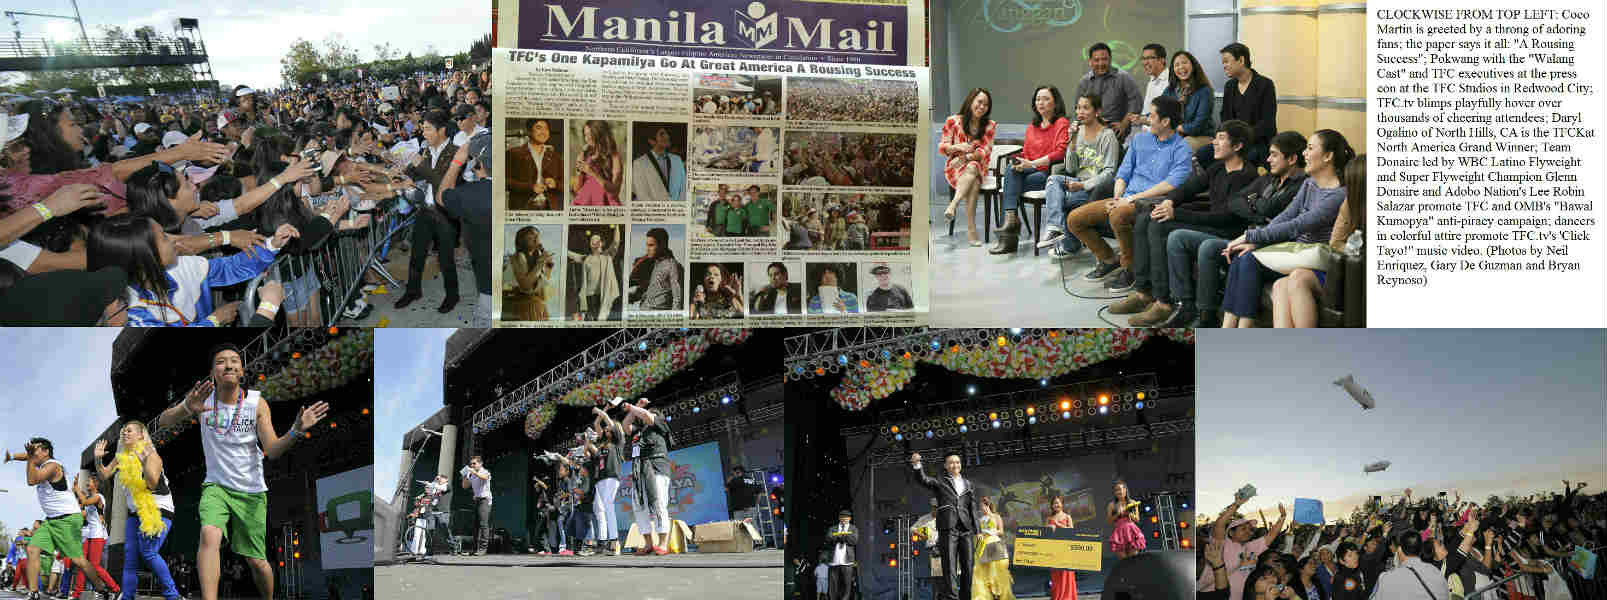 One Kapamilya Go 2012 at California's Great America: A Rousing Success